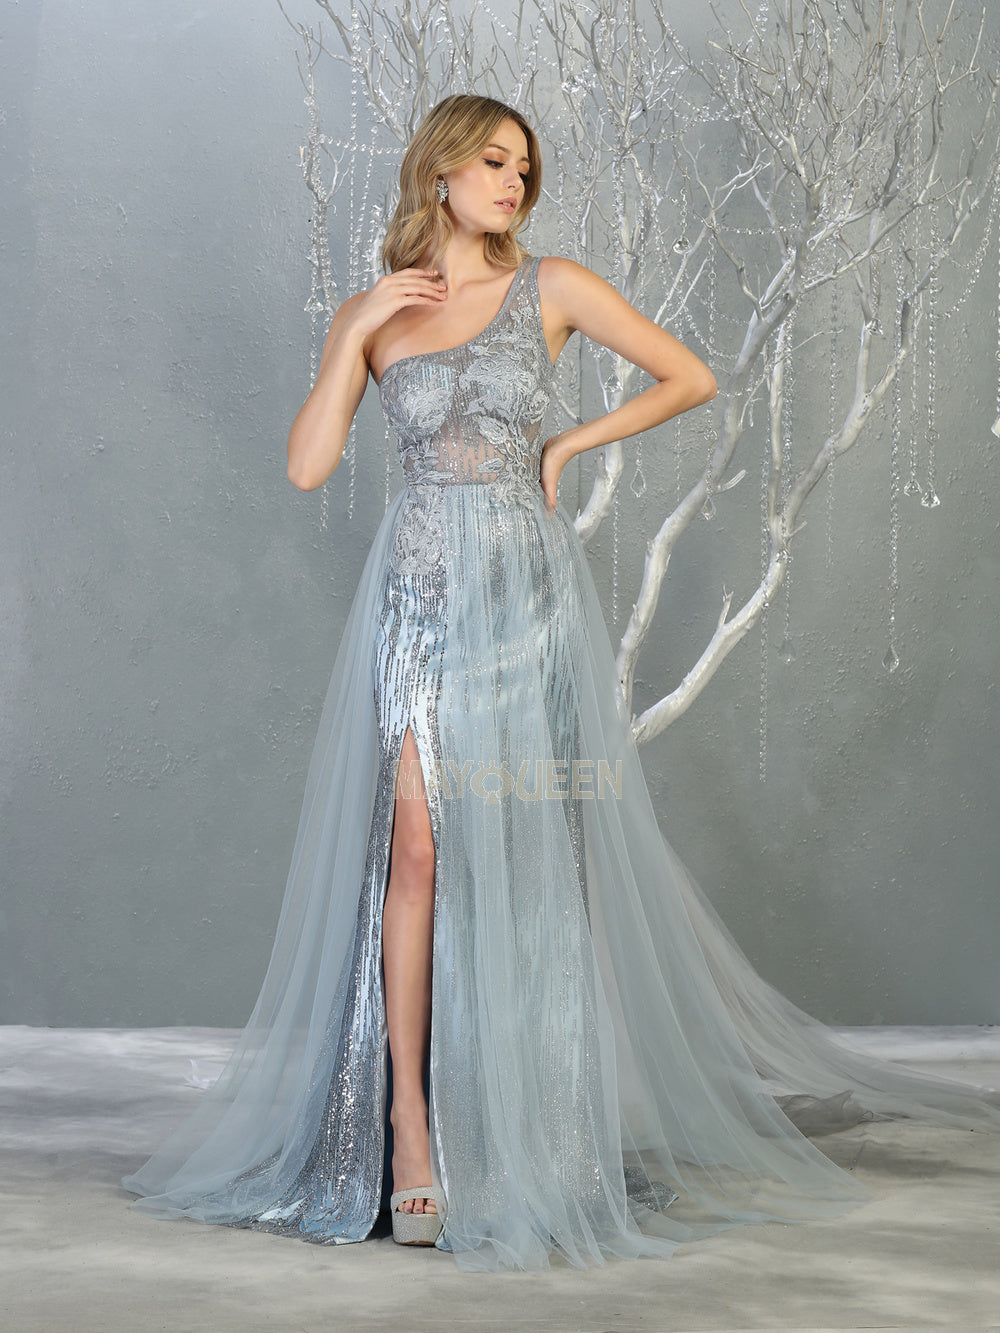 Mayqueen Size Chart E MQ 7816 - One shoulder a-line prom gown with high leg slit and glitter embellishment. - Diggz Prom